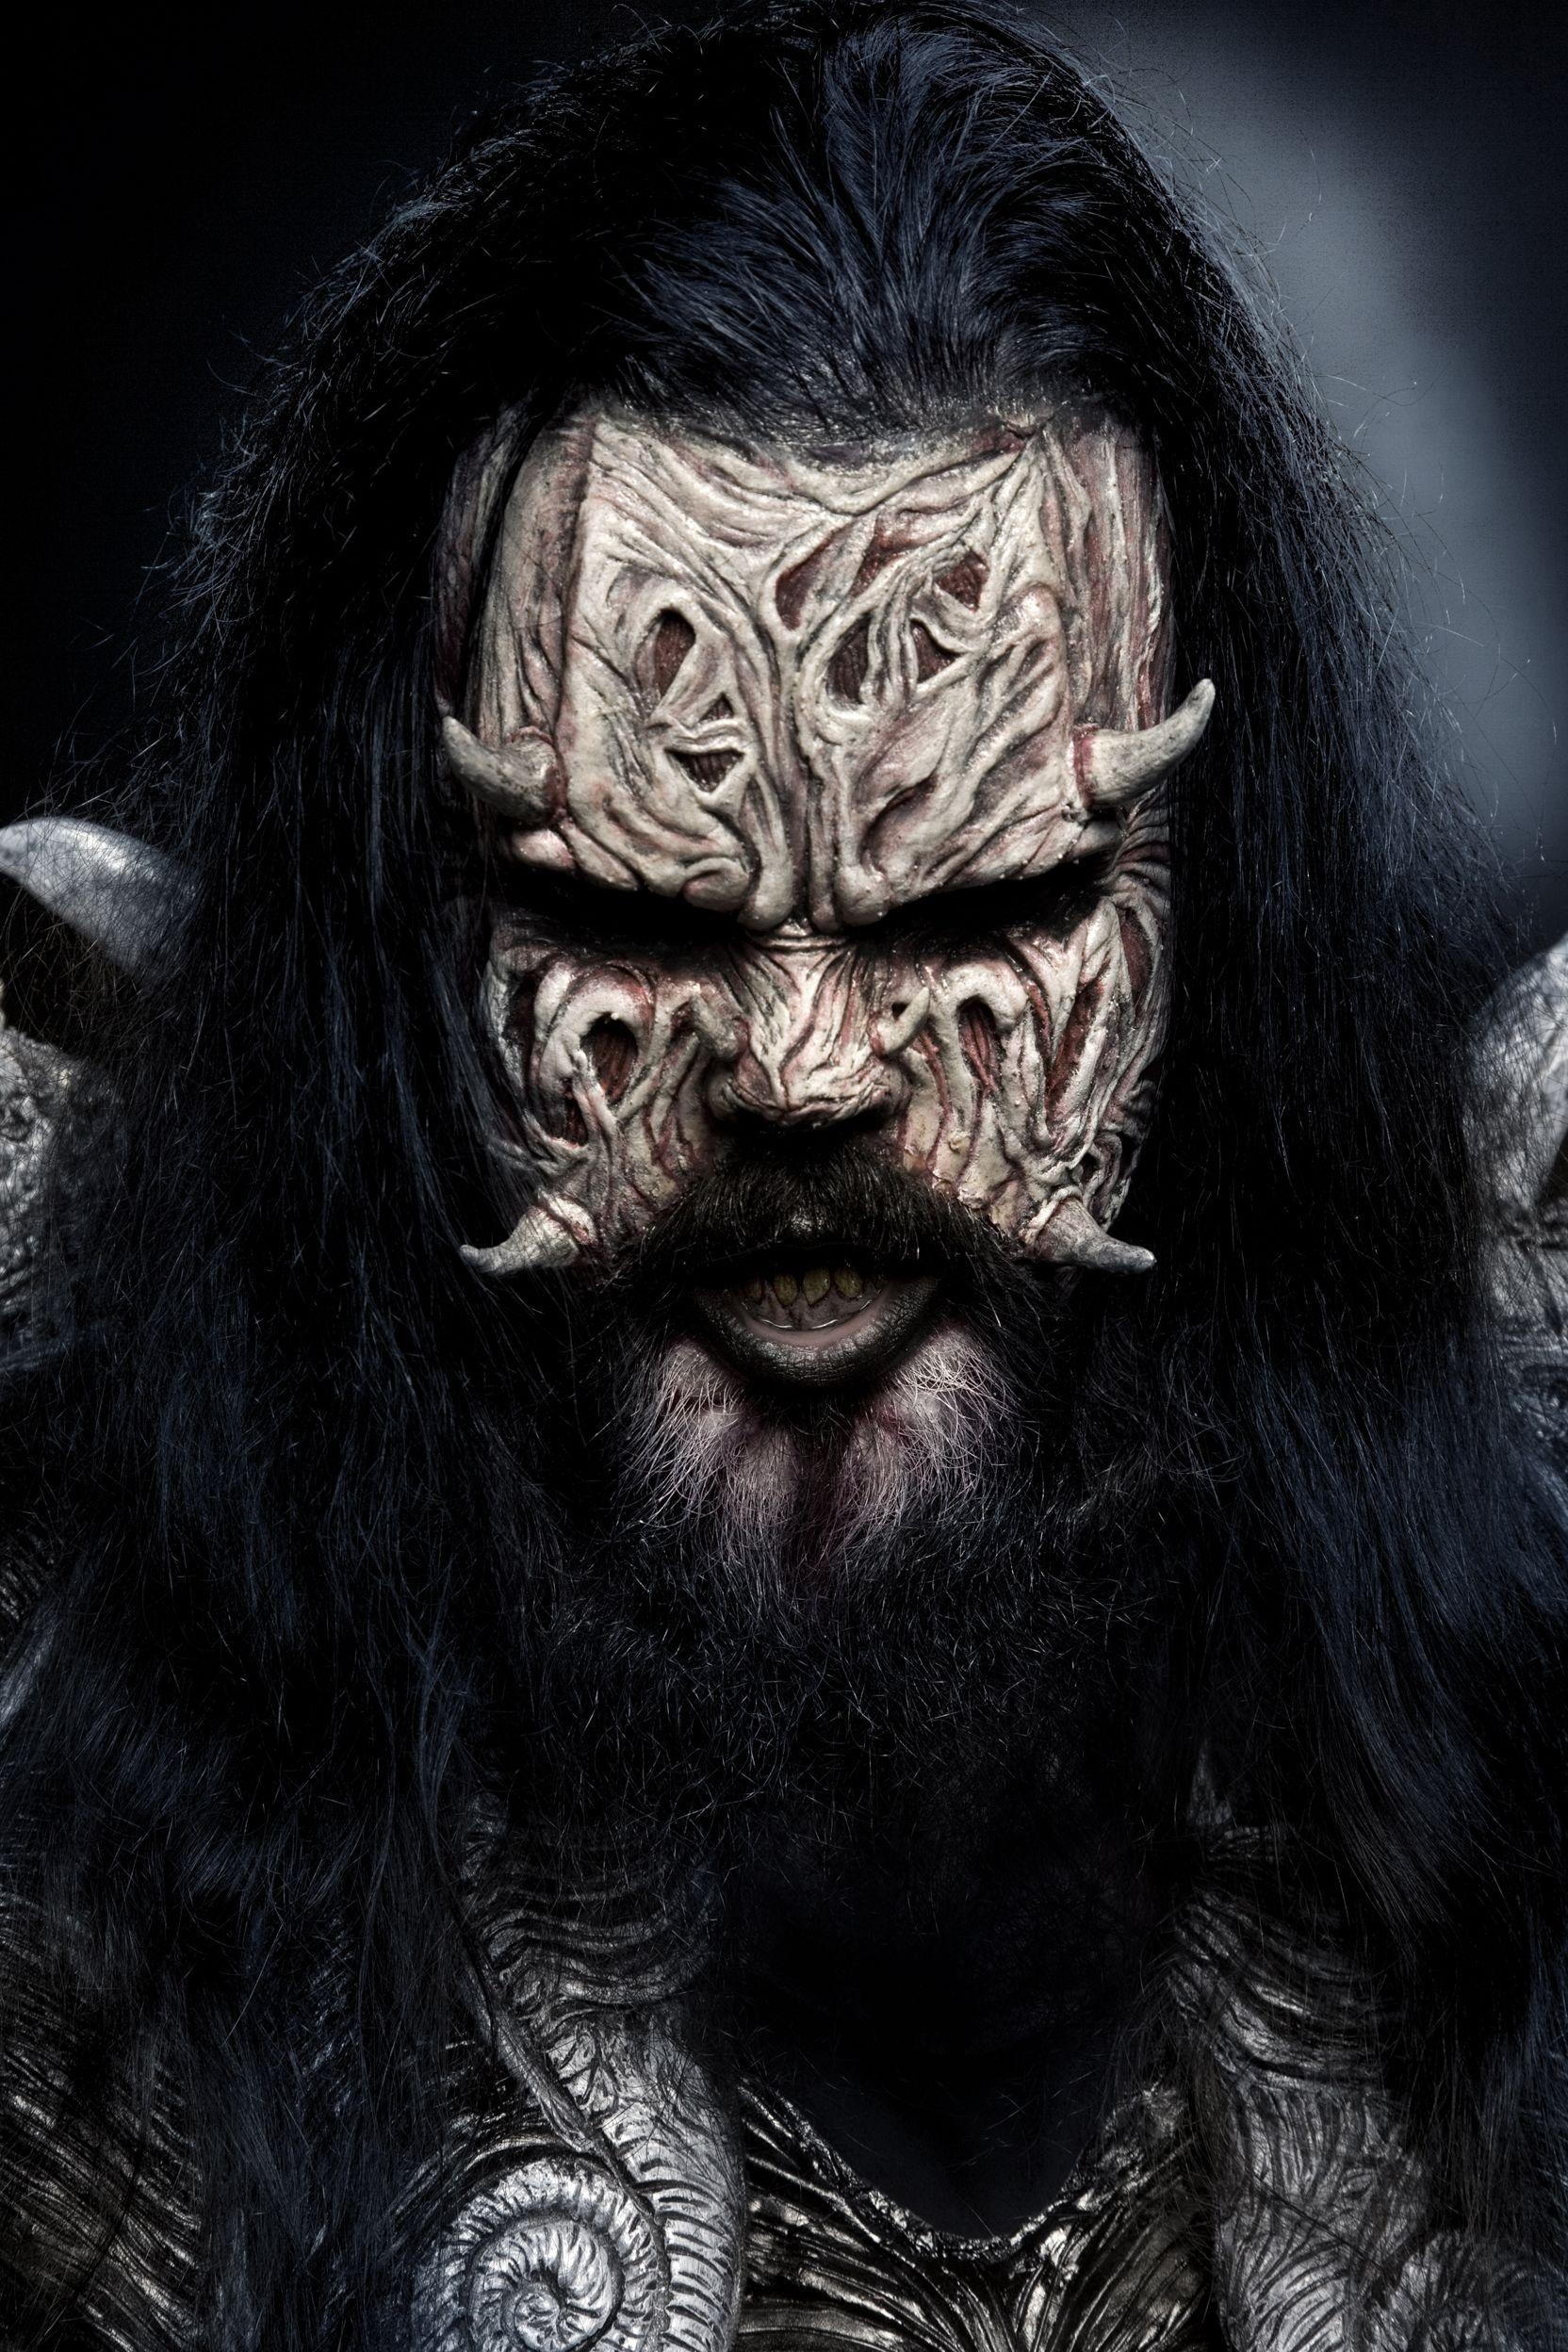 Mr Lordi | Music in 2019 | Band pictures, Lordi band, Metal bands